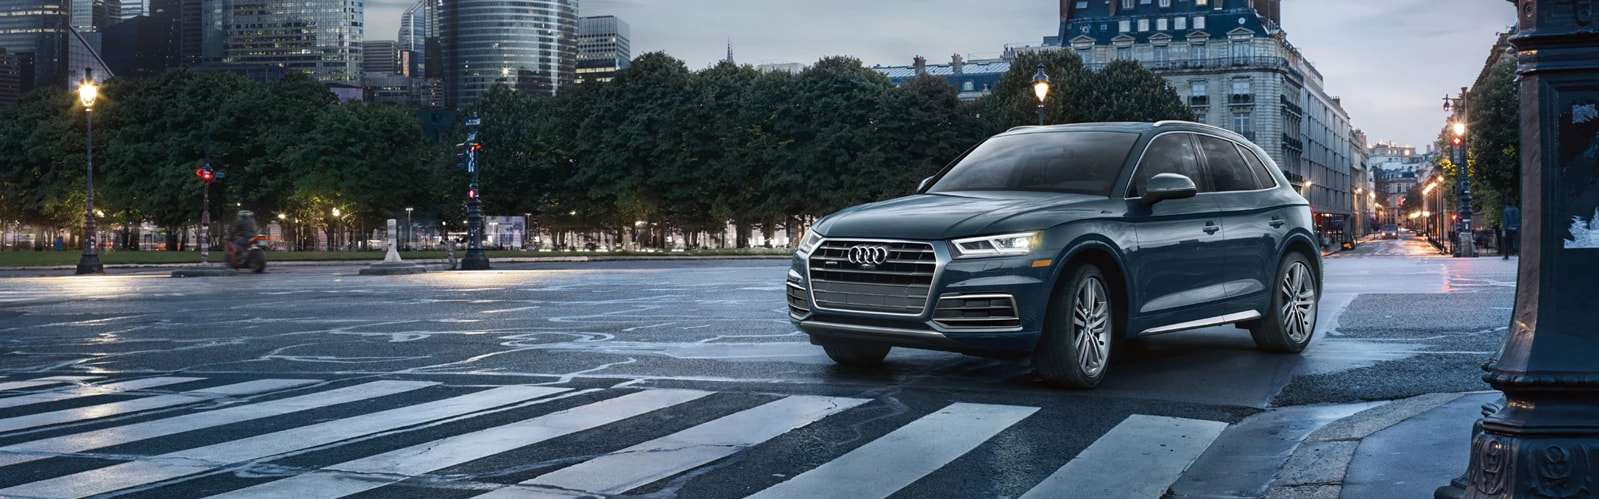 New And Used Audi Dealer Union City Audi South Atlanta - Audi dealers in south florida